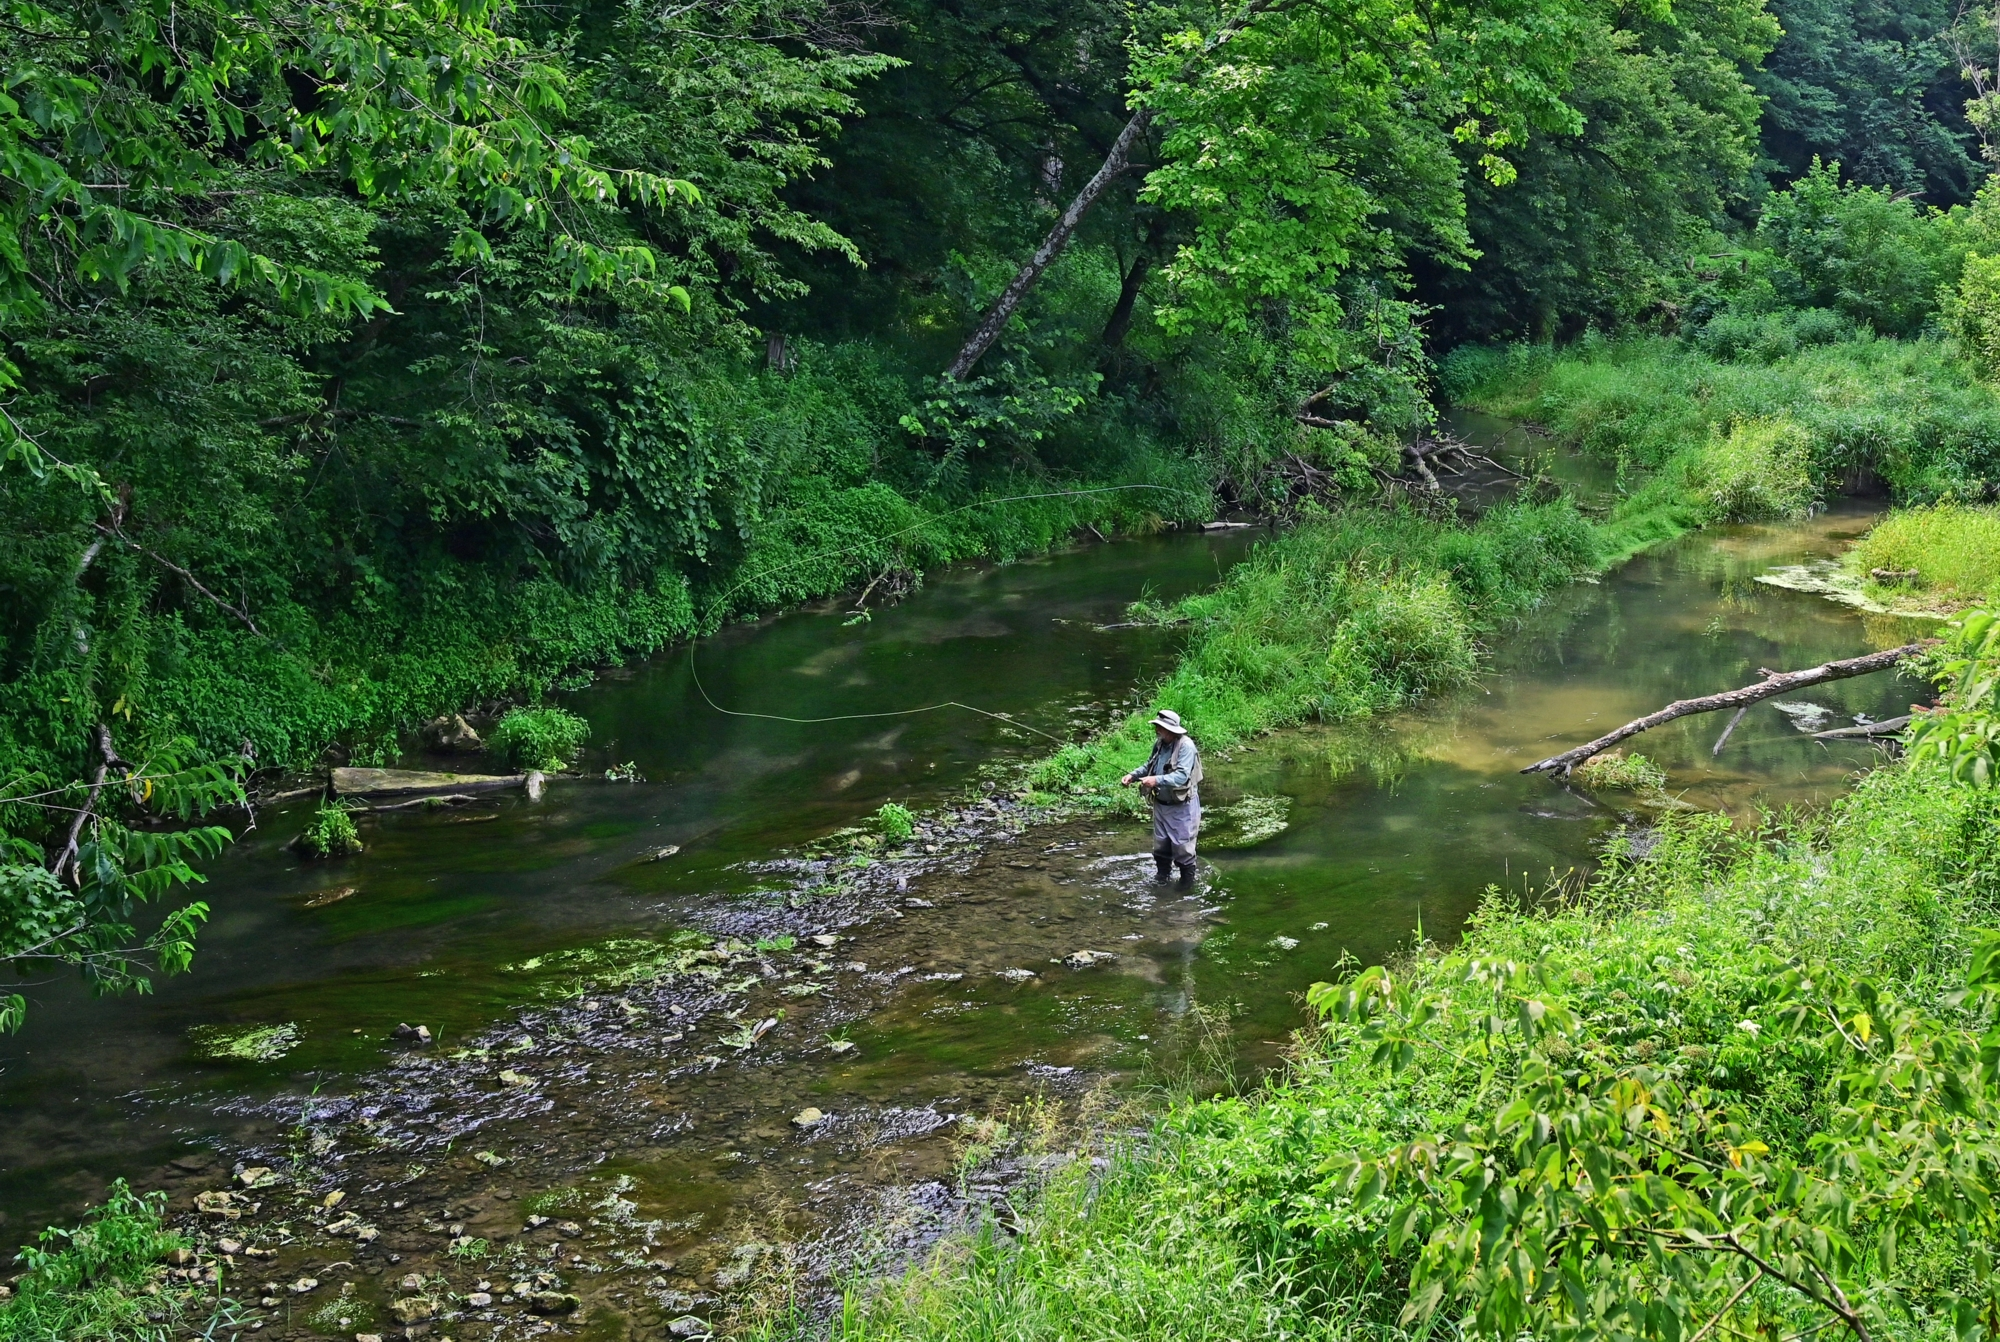 Heated battle over trout stream and planned cattle operation lands in court